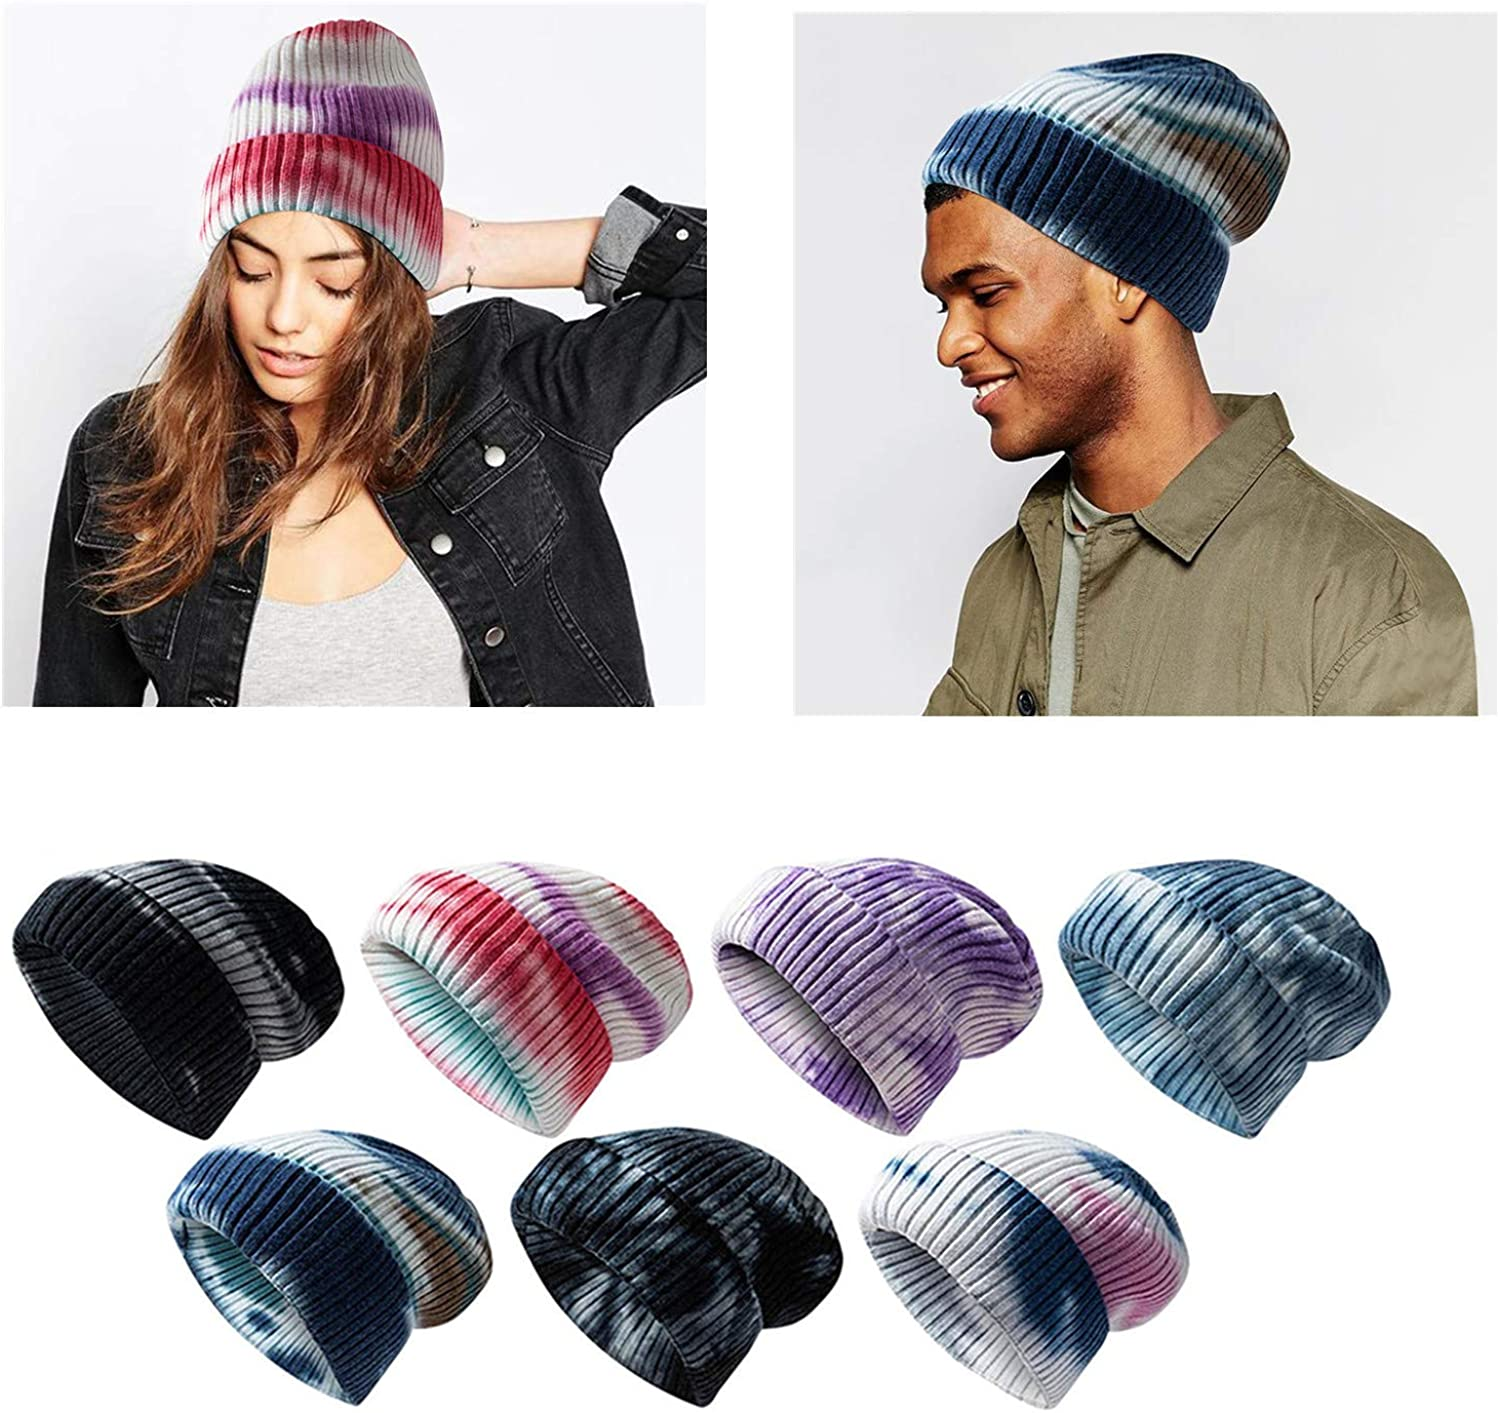 Unisex Winter Knitted Beanie Hat Tie Dyed Print Warm Cable Knit Skull Cap Soft Stretch Skully Beanie for Men & Women